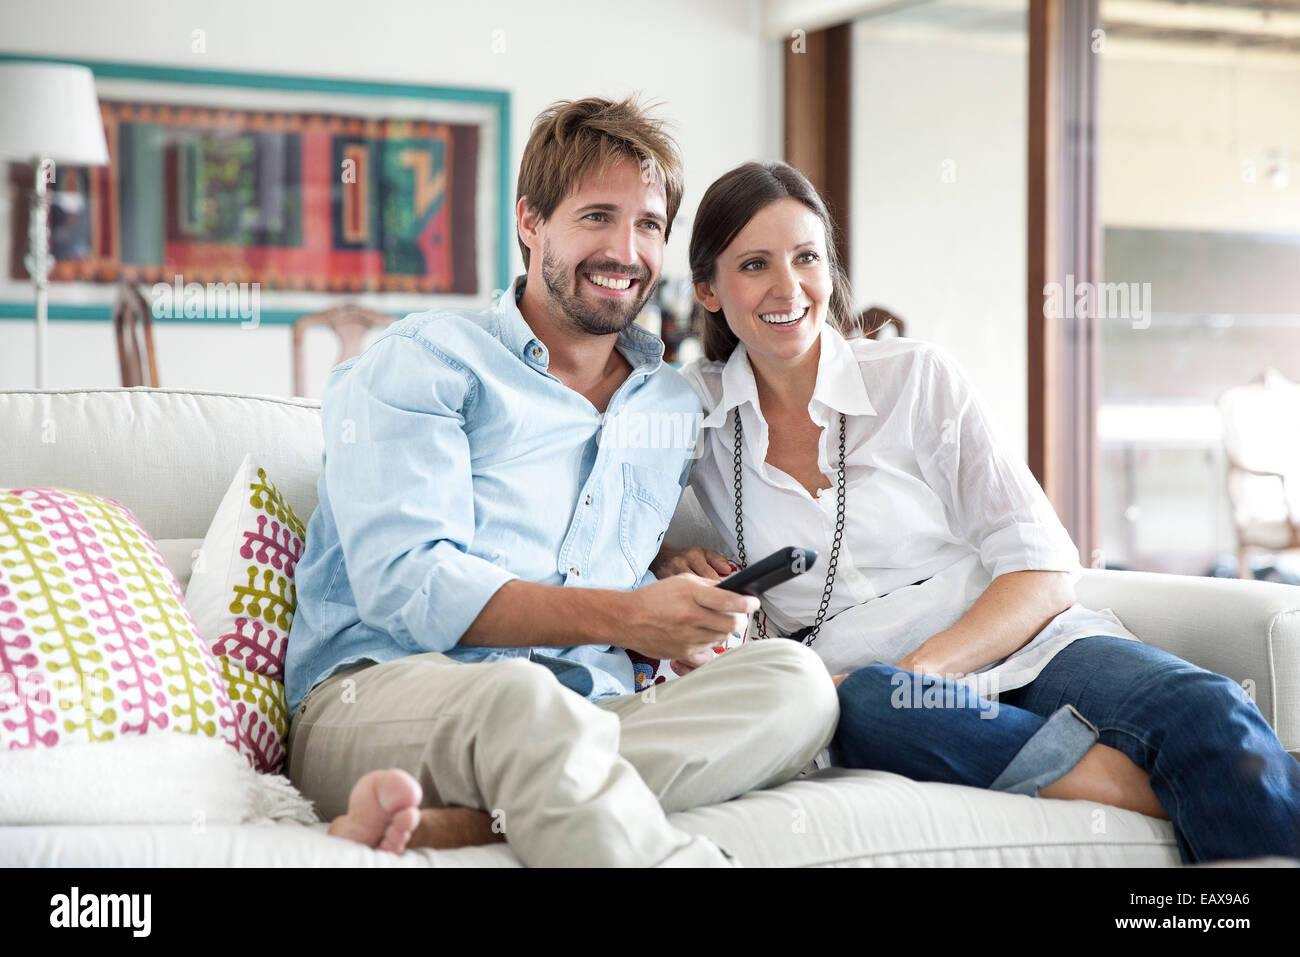 Couple watching TV together - Stock Image